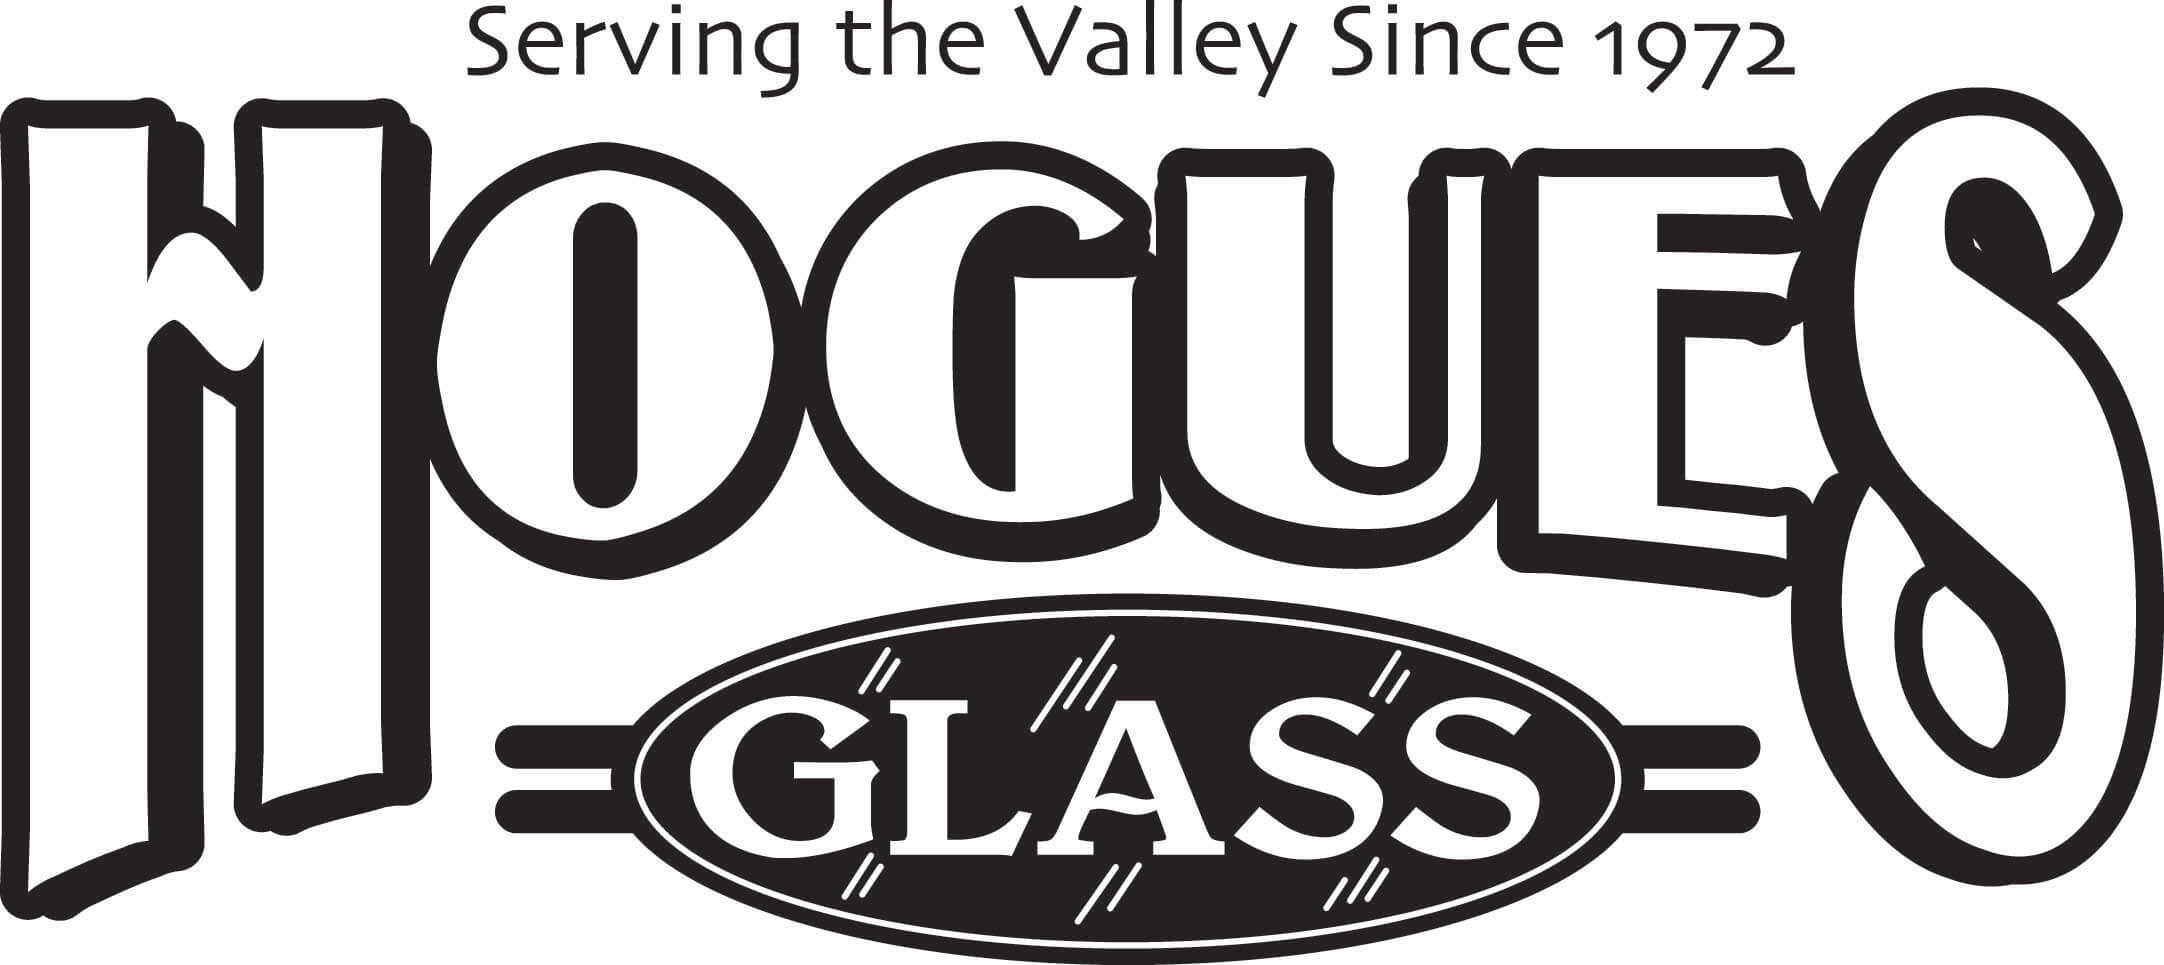 Hogues Glass is proudly served by Jade Internet